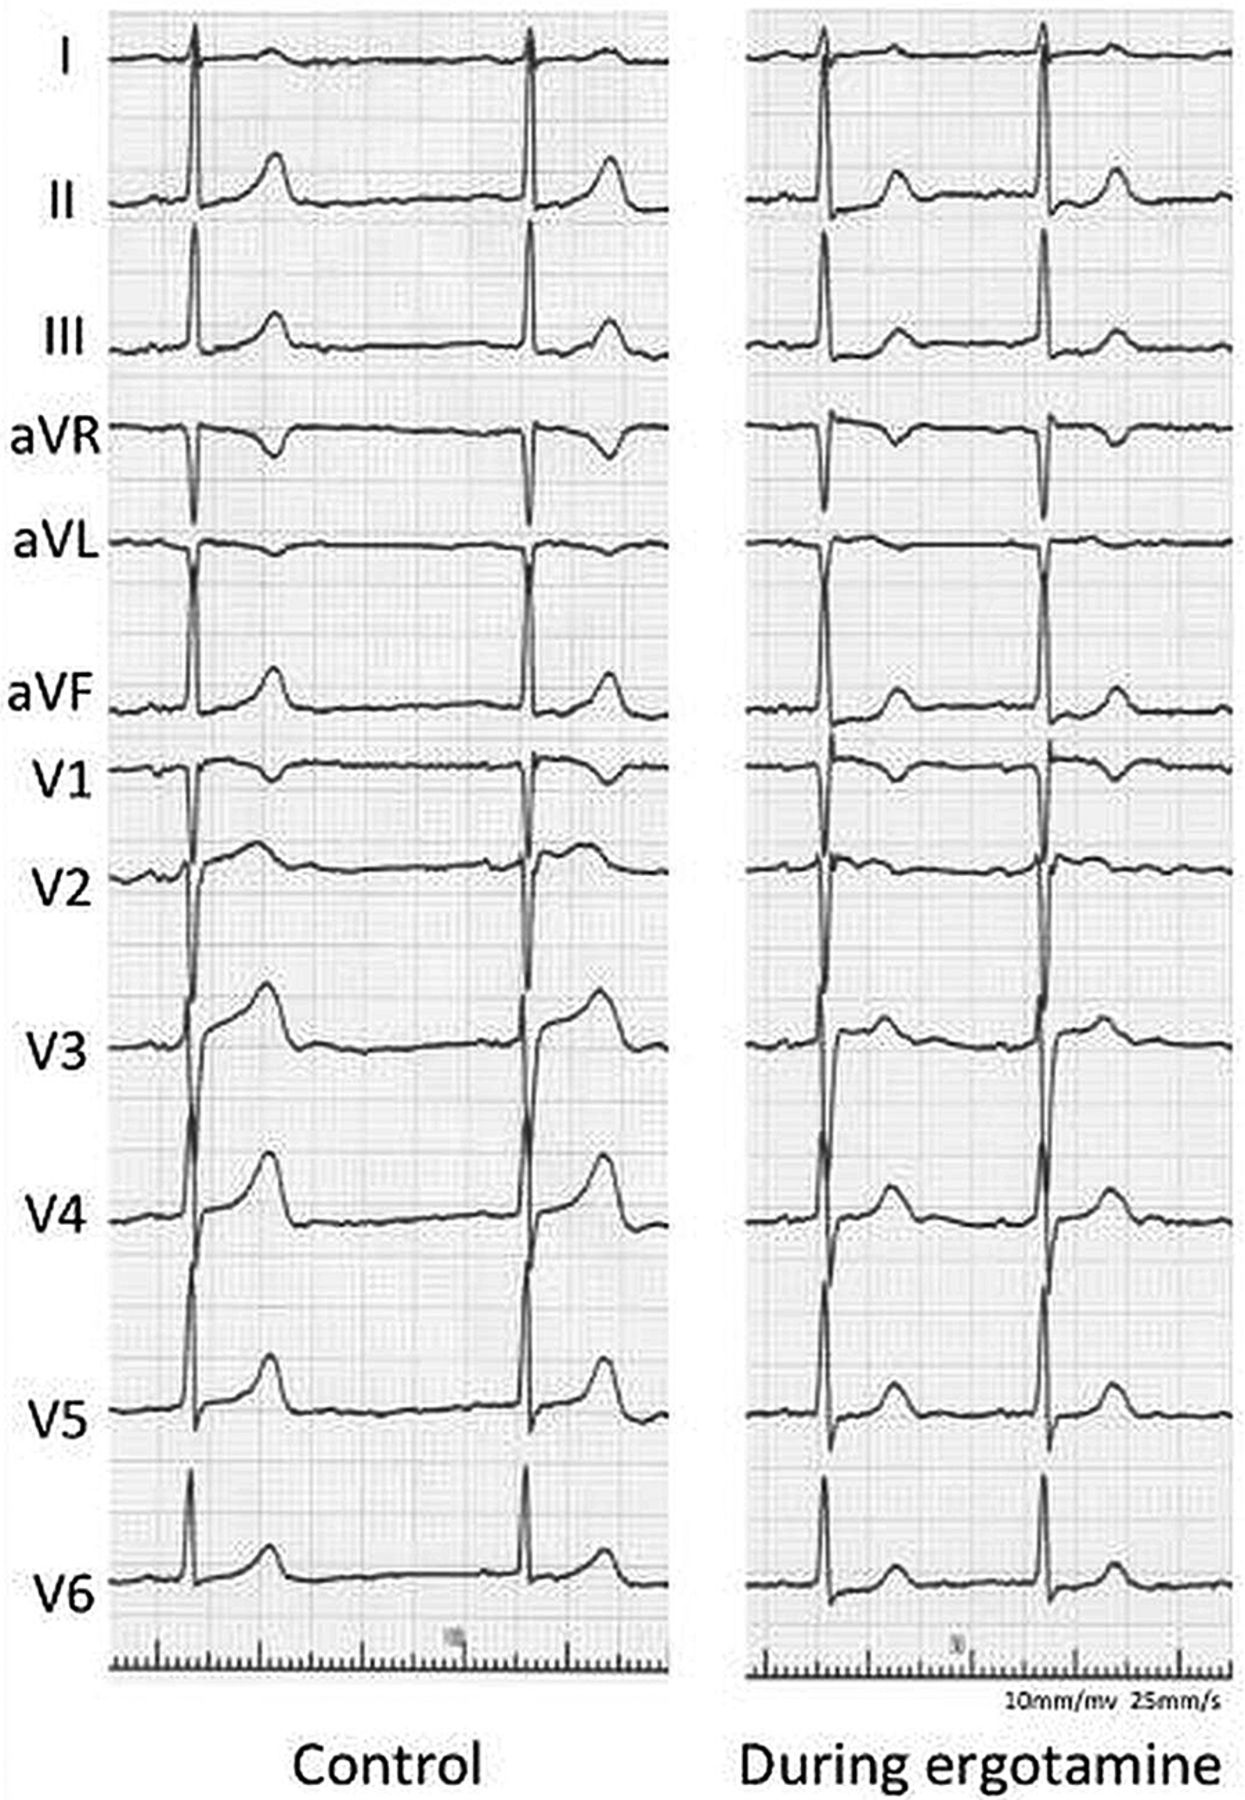 Coronary Spasm As The Cause Of Myocardial Ischaemia In A Patient With Anomalous Origin Of The